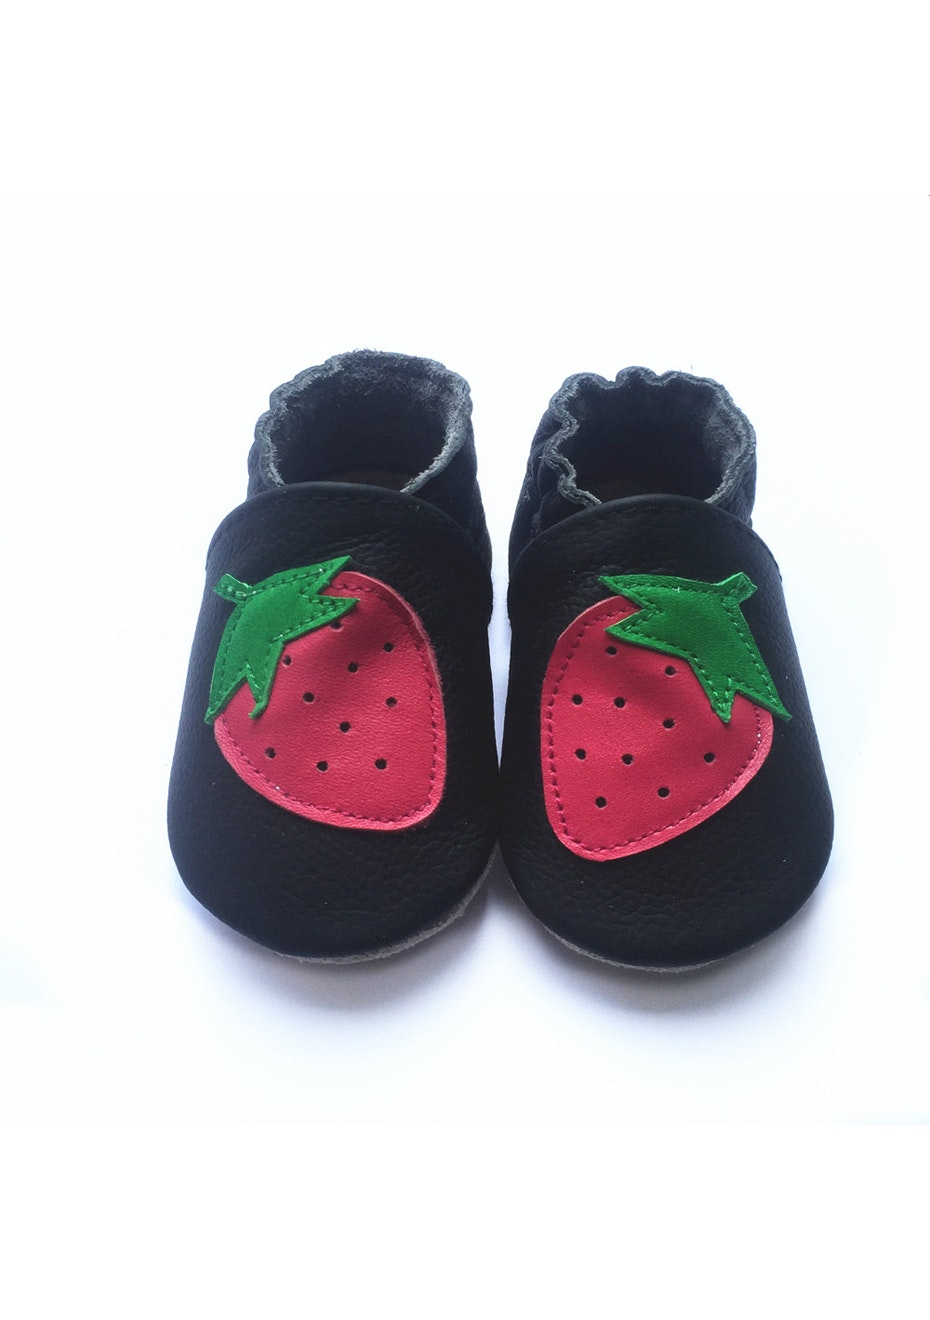 Baby  Leather Shoes - Black / Strawberry